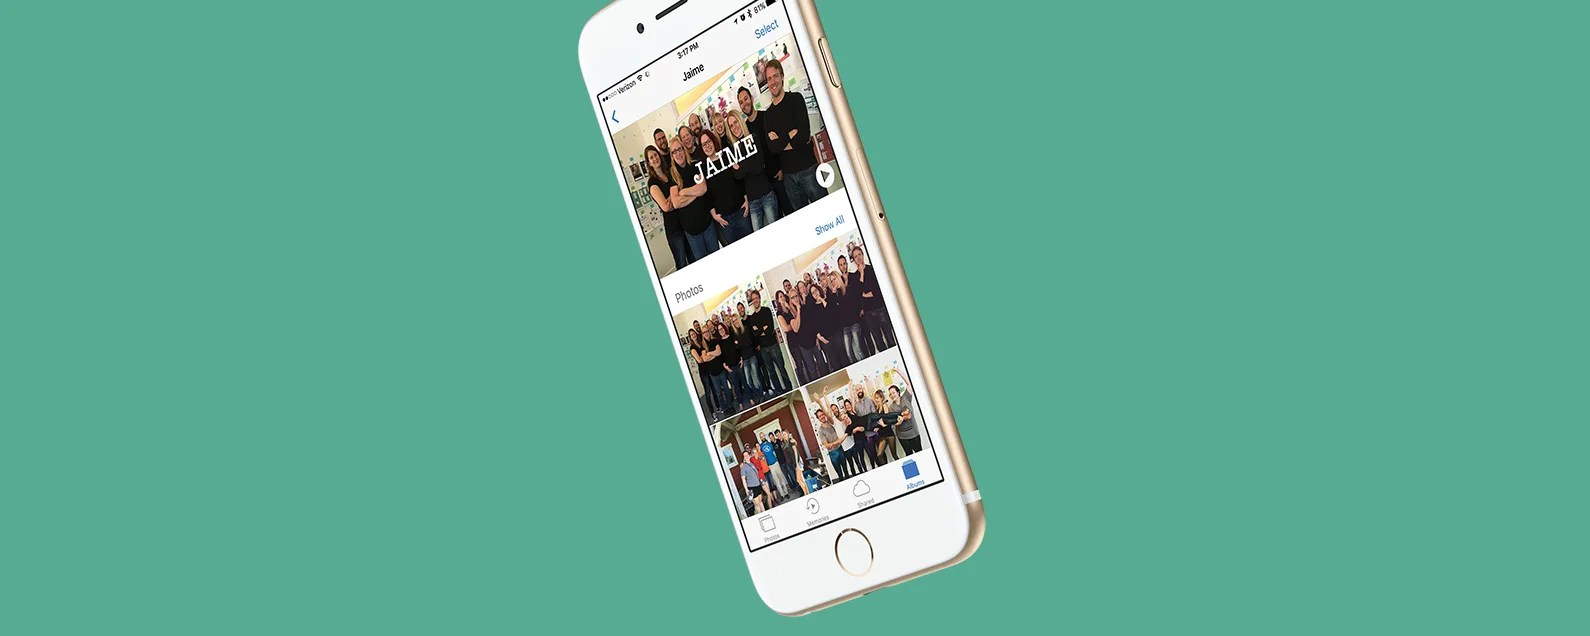 Upscale How To Add A Name To People Album Photos On Iphone How To Add A Name To People Album Photos On Iphone How To Select All Photos On Iphone Ios 7 How To Select All Photos On Iphone To Airdrop photos How To Select All Photos On Iphone